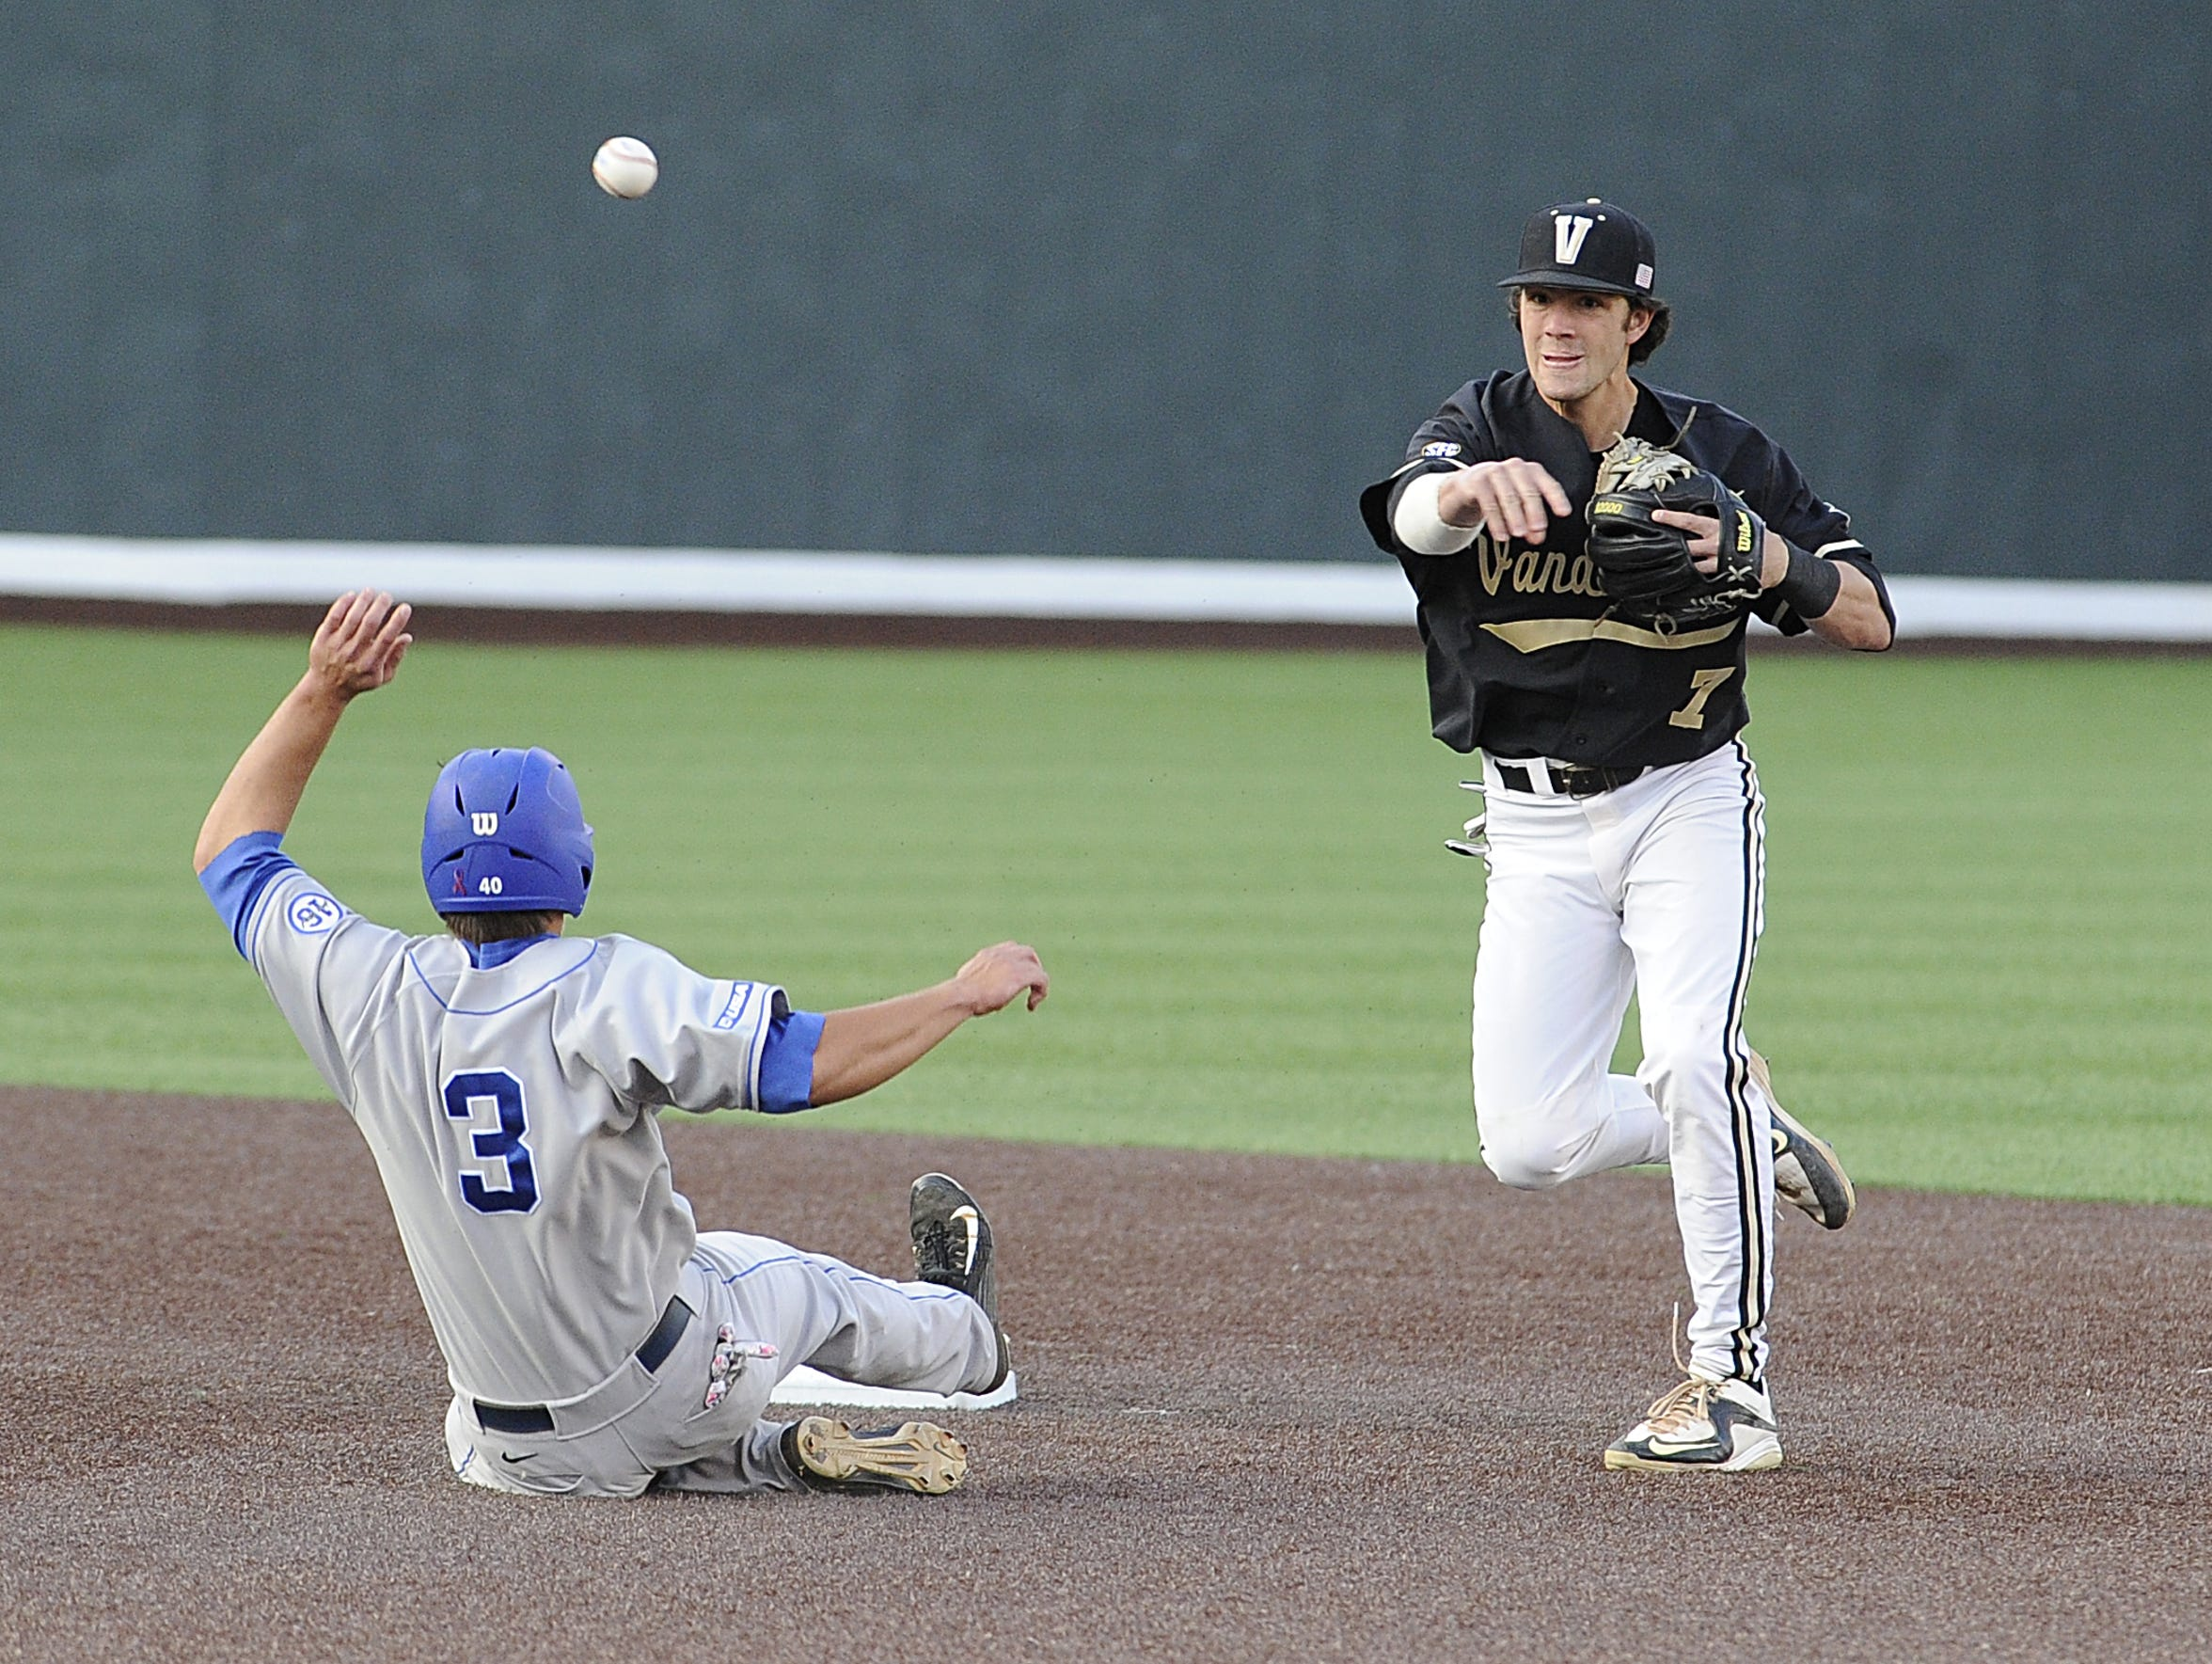 Vanderbilt's Dansby Swanson gets a double play as MTSU's